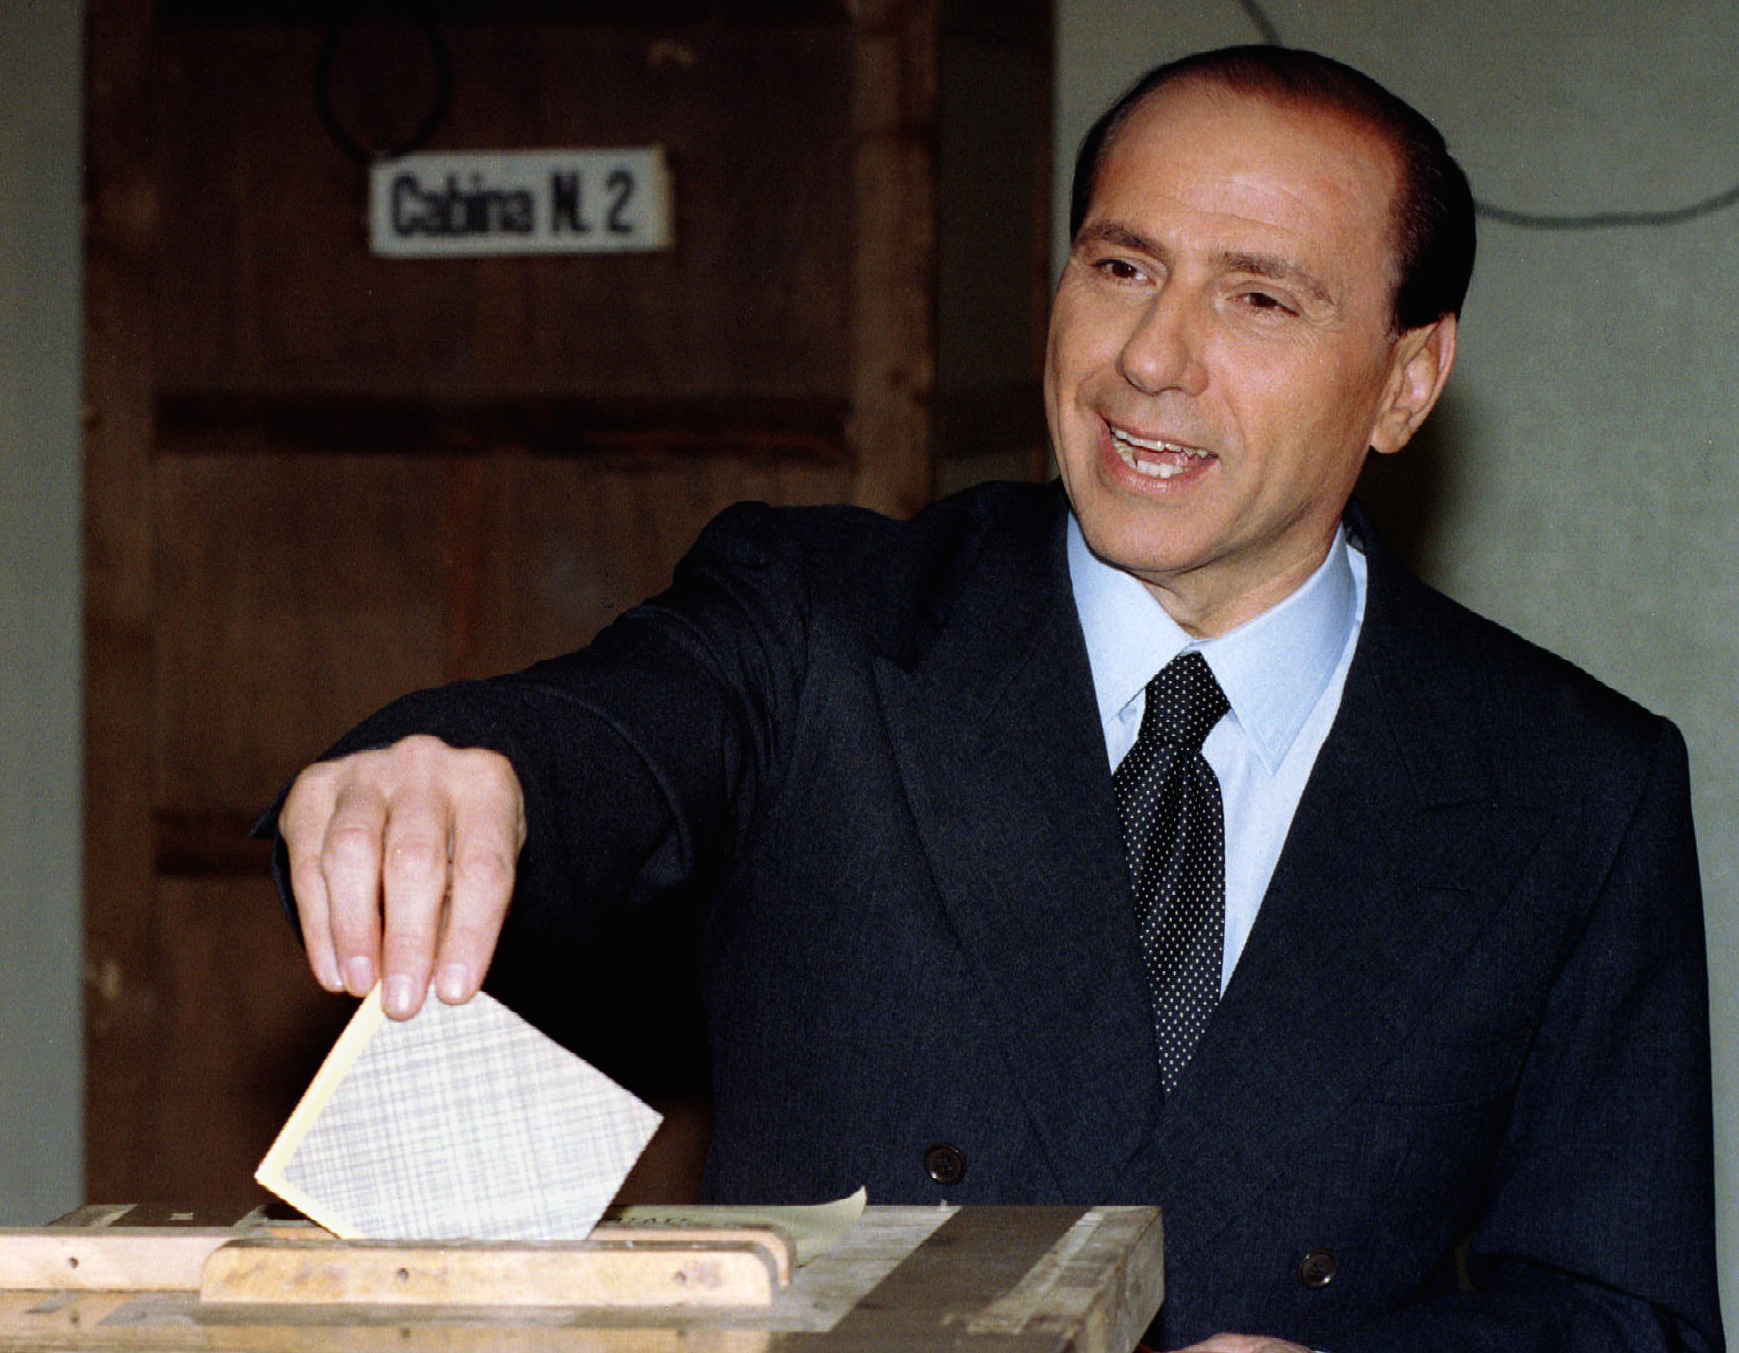 Silvio Berlusconi, leader of the right-wing Forza Italia (Go Italy) party and head of the head of the Freedom Alliance votes in the landmark Italian general elections March 28.